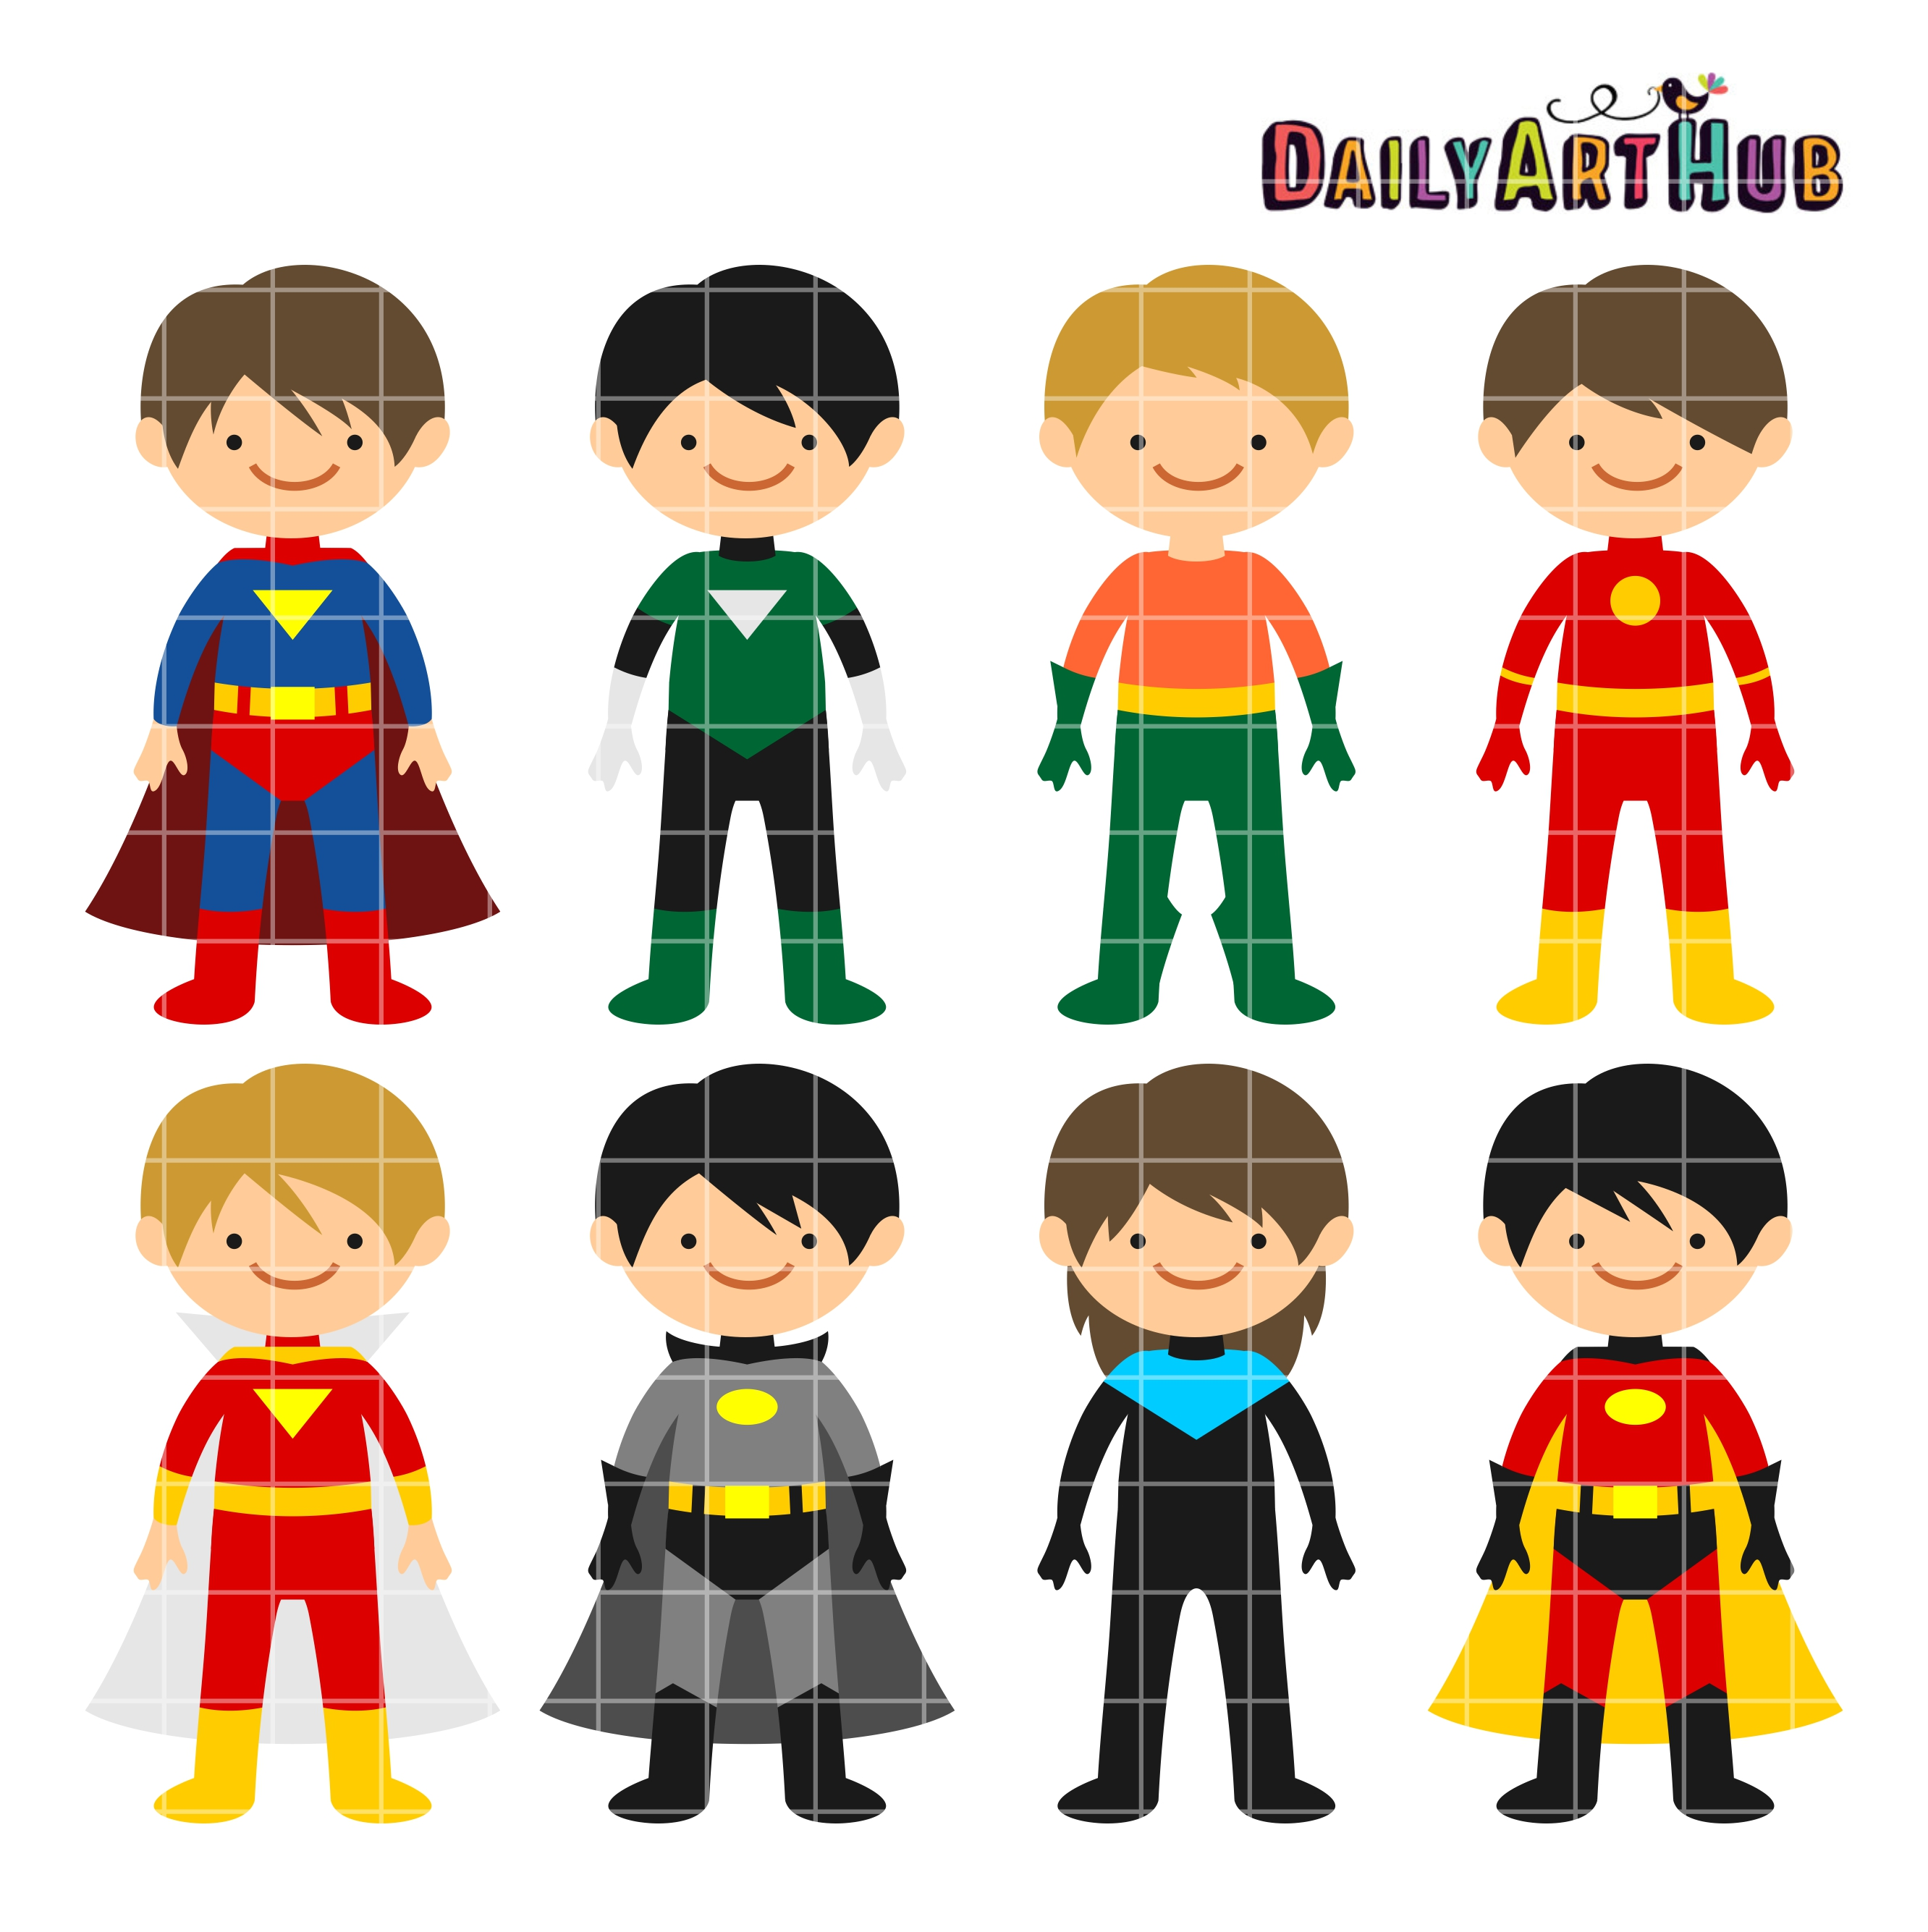 2664x2670 Superhero Boys Clip Art Set Daily Art Hub